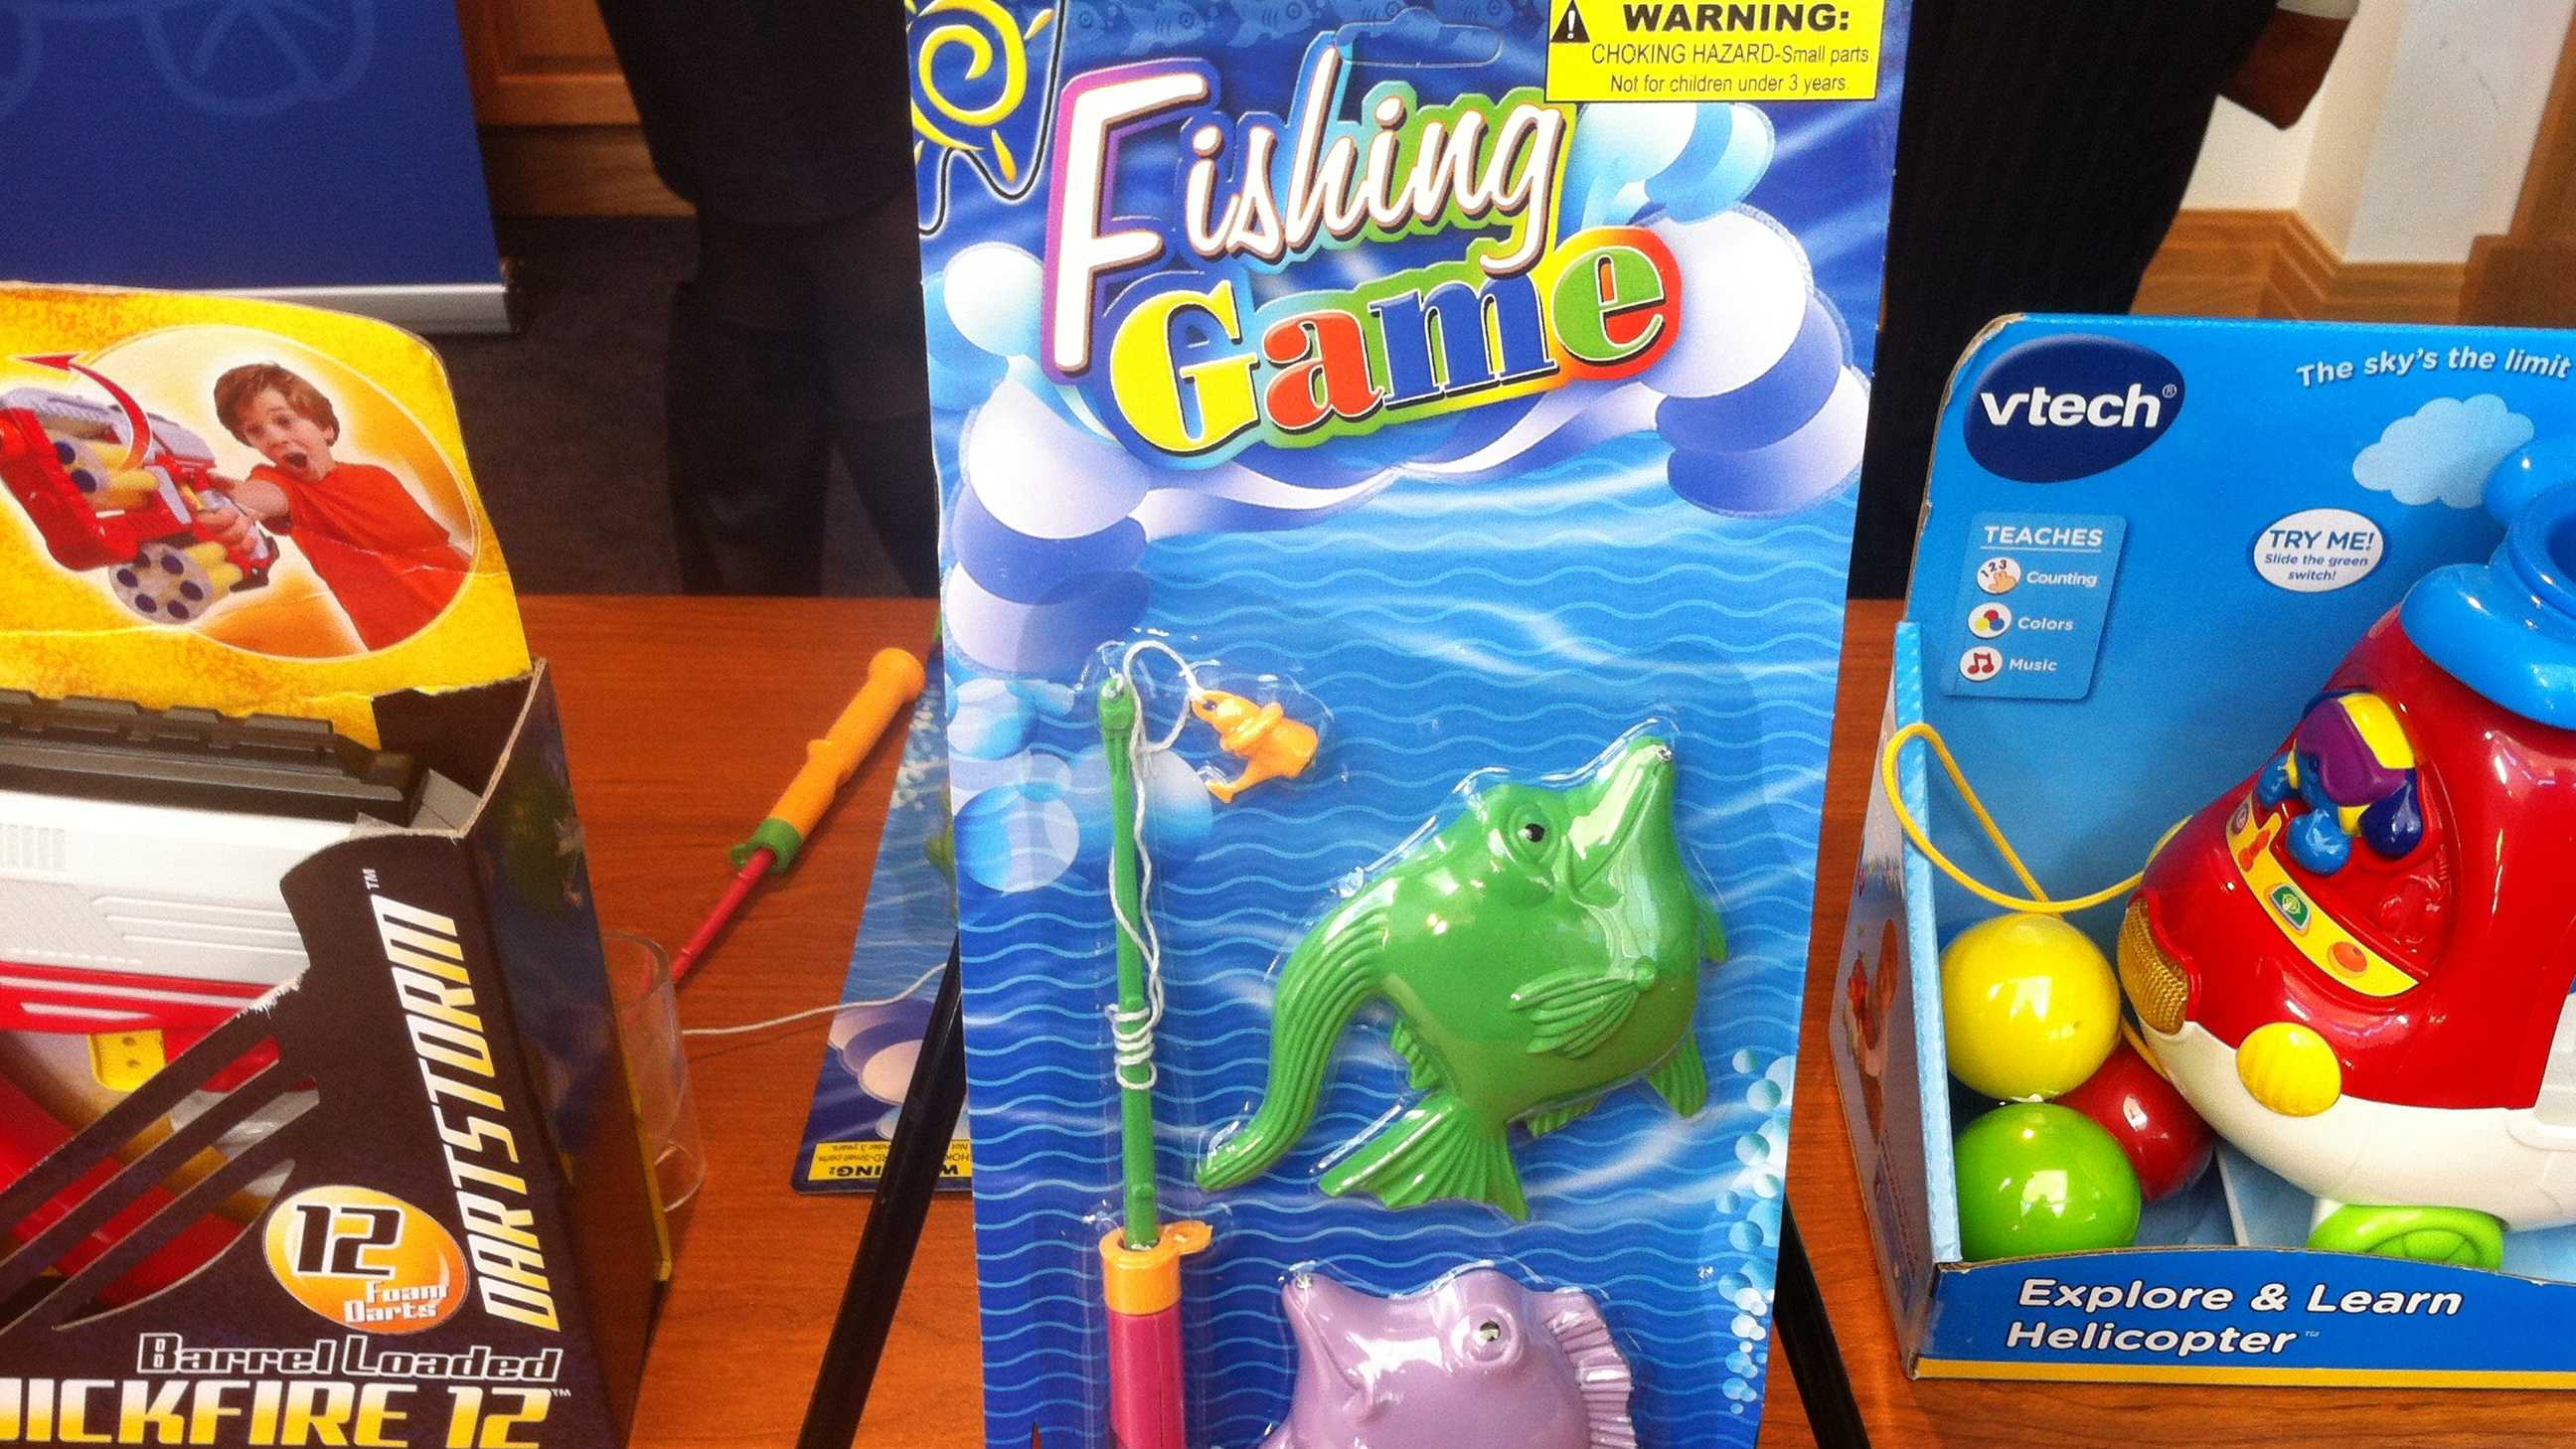 "Magnetic Fishing Game by Kole Imports. POTENTIAL FOR CHOKING INJURIES! According to W.A.T.C.H., this ""fishing game"" is sold online for 16-month-old children, however, the packaging contains a warning of a choking hazard for children under 3 years old. The plastic fishing pole uses common twine to attach a small, magnetic lure. The brightly-colored plastic lure, whether detached or connected to the approximately 9""-long cord, poses a serious potential choking hazard for oral-age children."